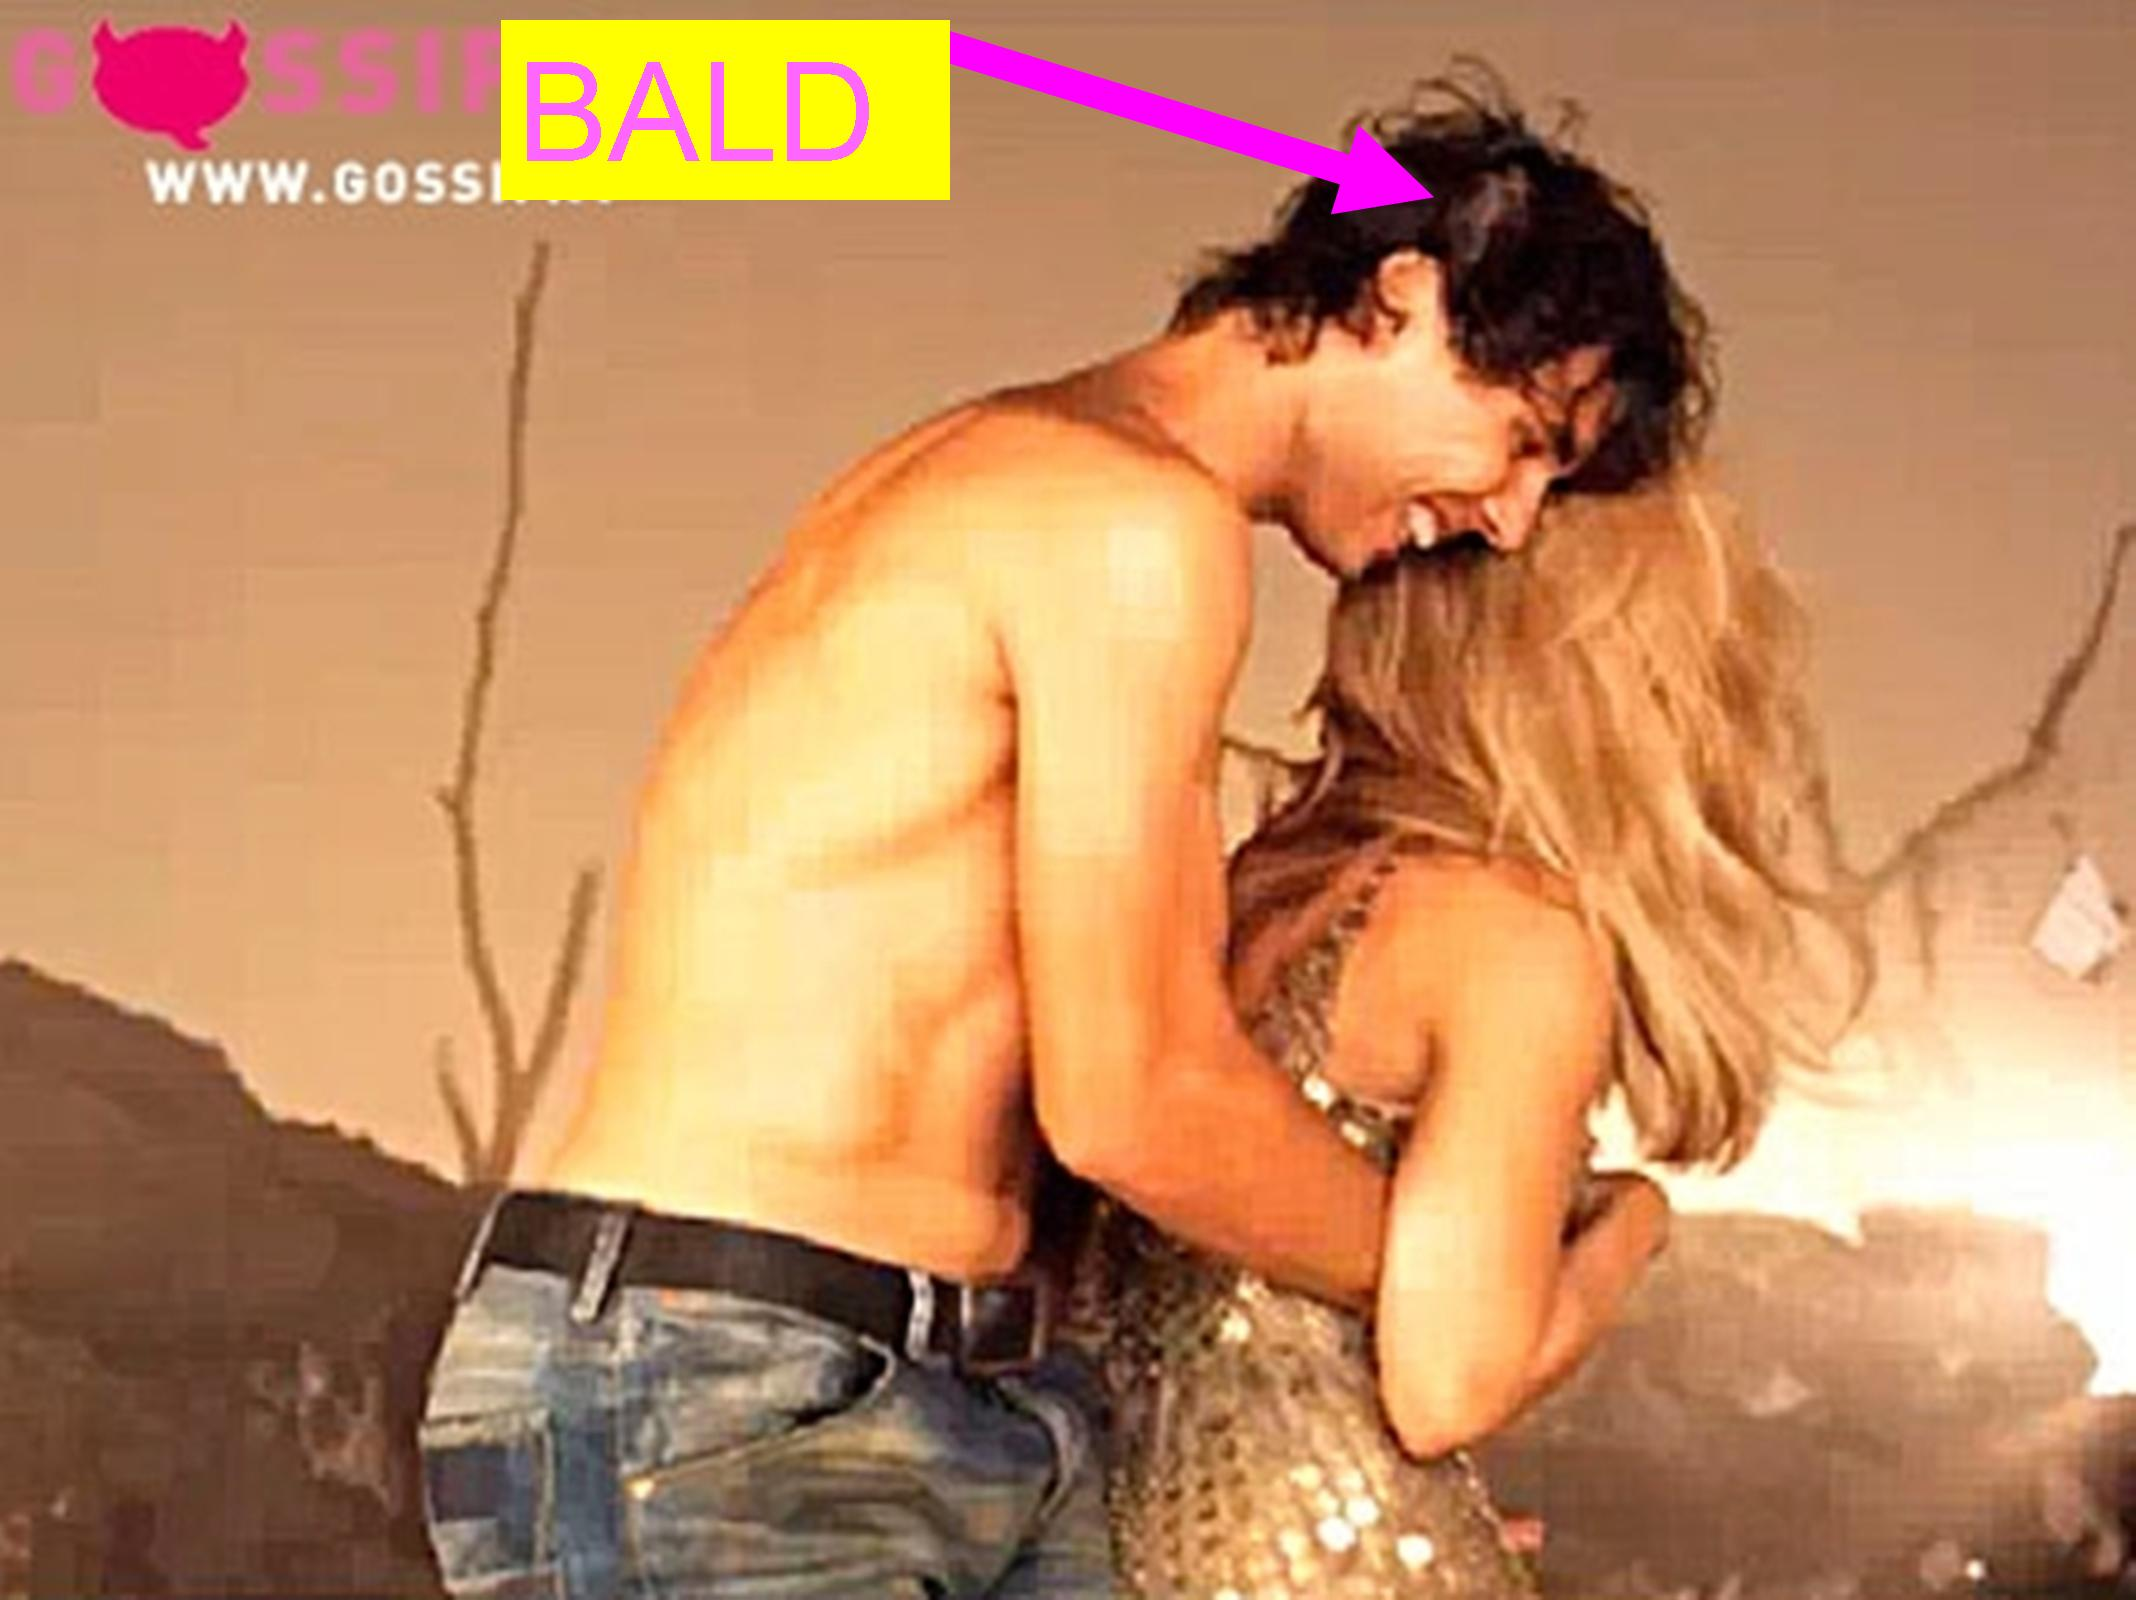 Nadal bald and embrace with Shakira..